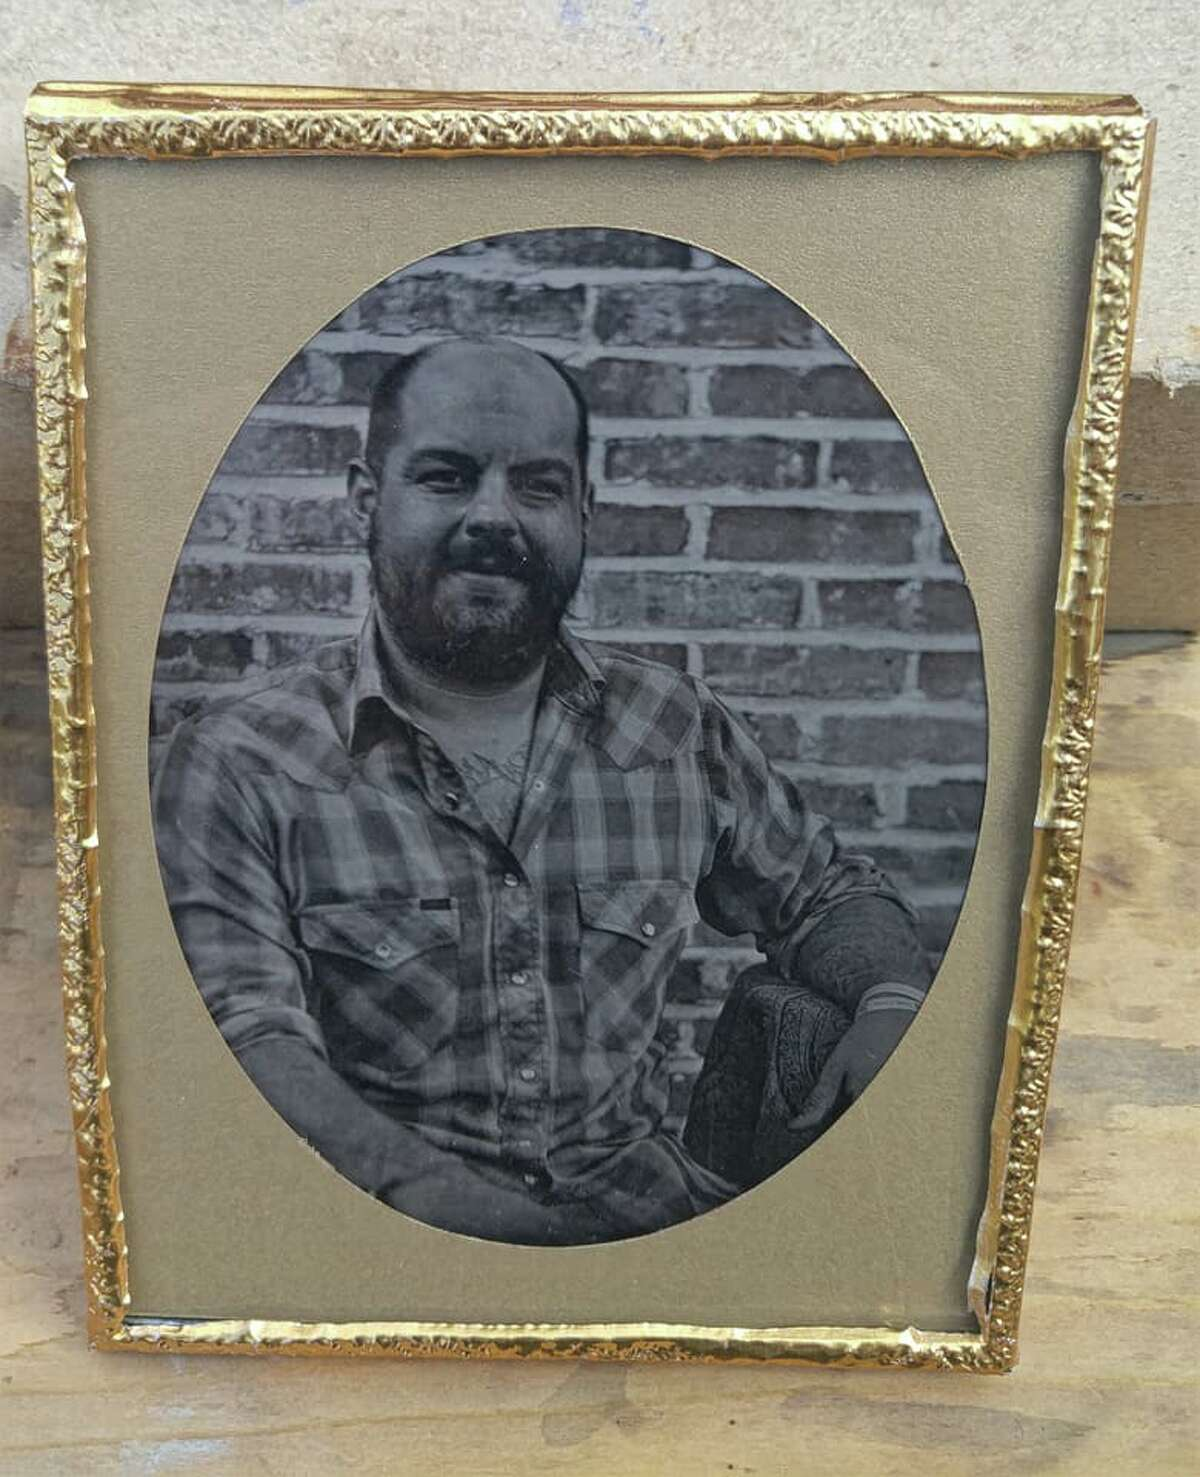 Cody Mobley is a Menard County resident and Texas Historical Commission staffer who says he is one of only a handful of Texans currently practicing the wet plate photographic method. It was just two years ago that he built his first camera and began teaching himself the process. Mobley is for hire, driving around Texas with his wet collodion process to transport subjects back roughly 160 years. Mobley's process was invented by Englishman Frederick Scott Archer around 1851.